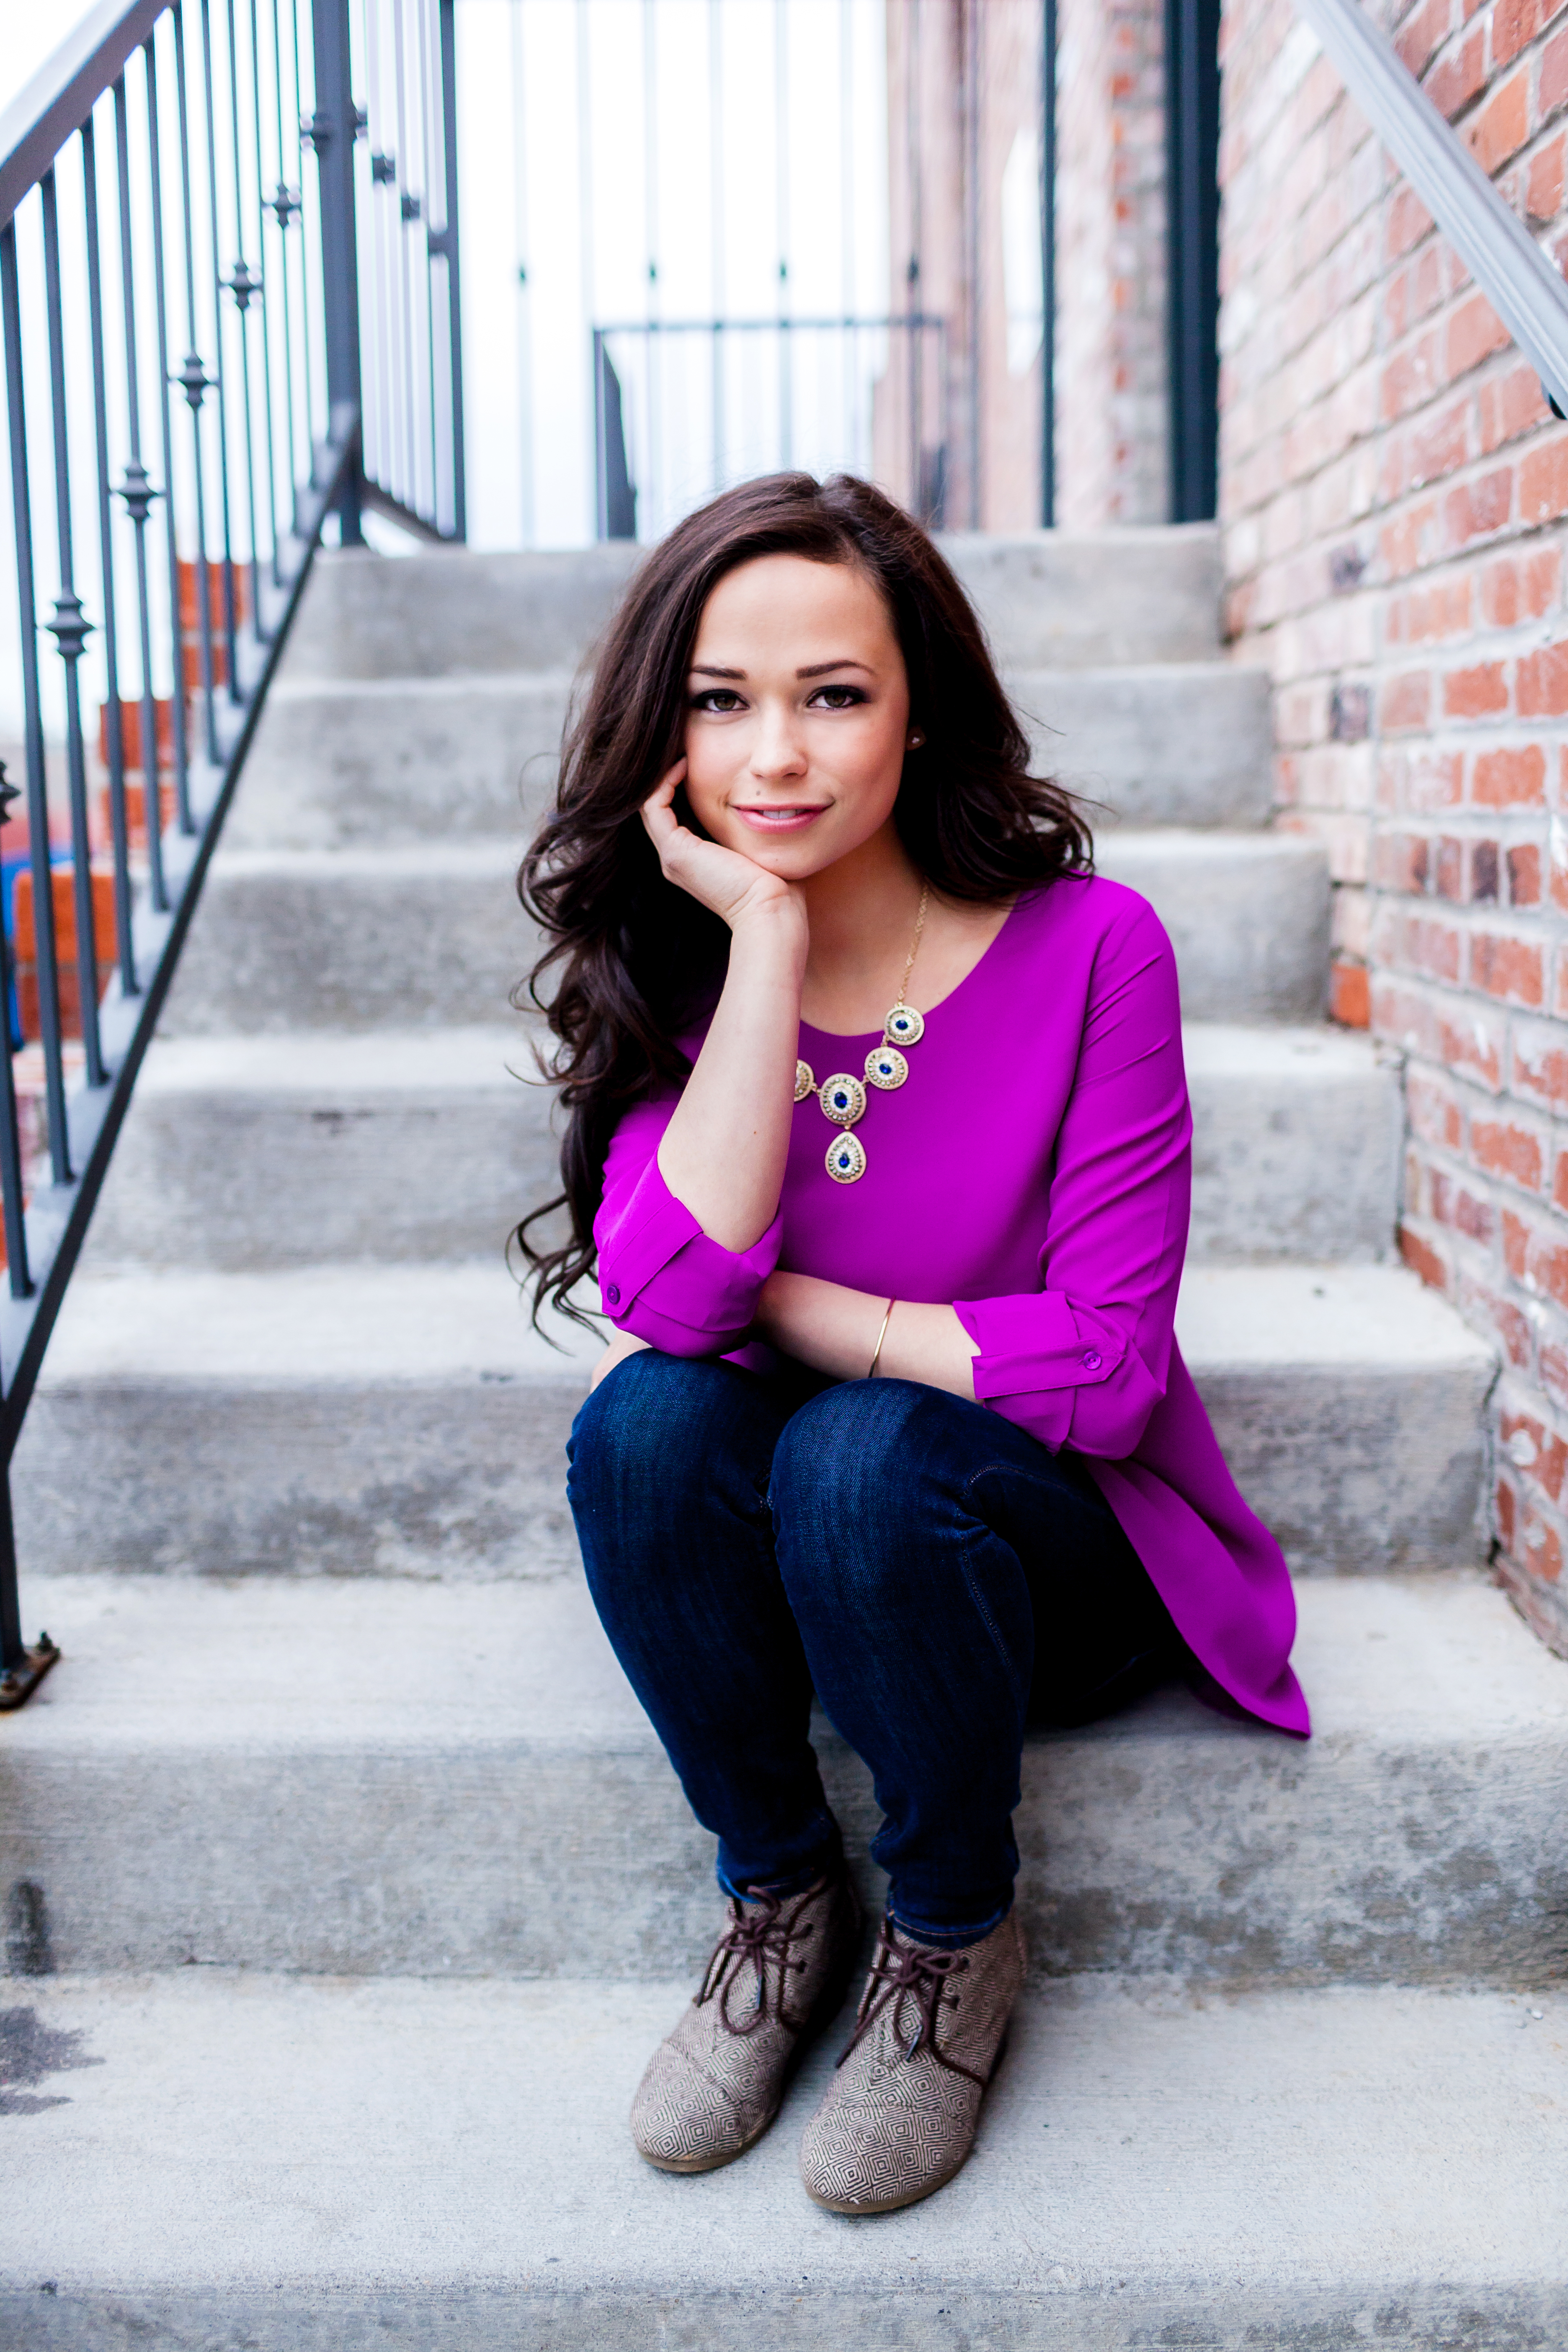 Chapel Valley welcomes soloist Kathryn Fergerson to family of artists